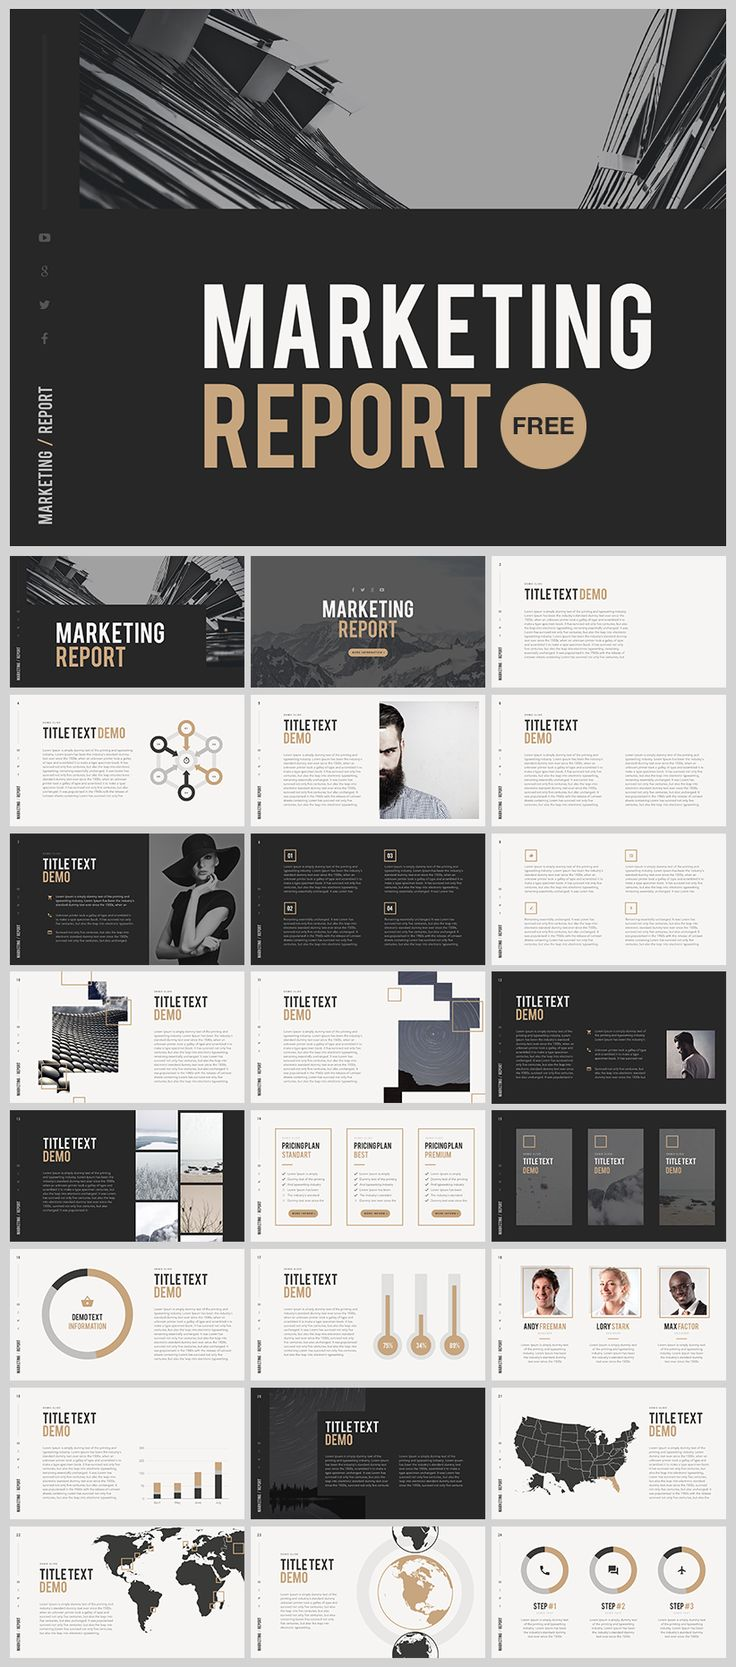 35 best free keynote template images on pinterest free stencils the marketing report free keynote template is designed to help at work more keynote templates for business and marketing toneelgroepblik Gallery